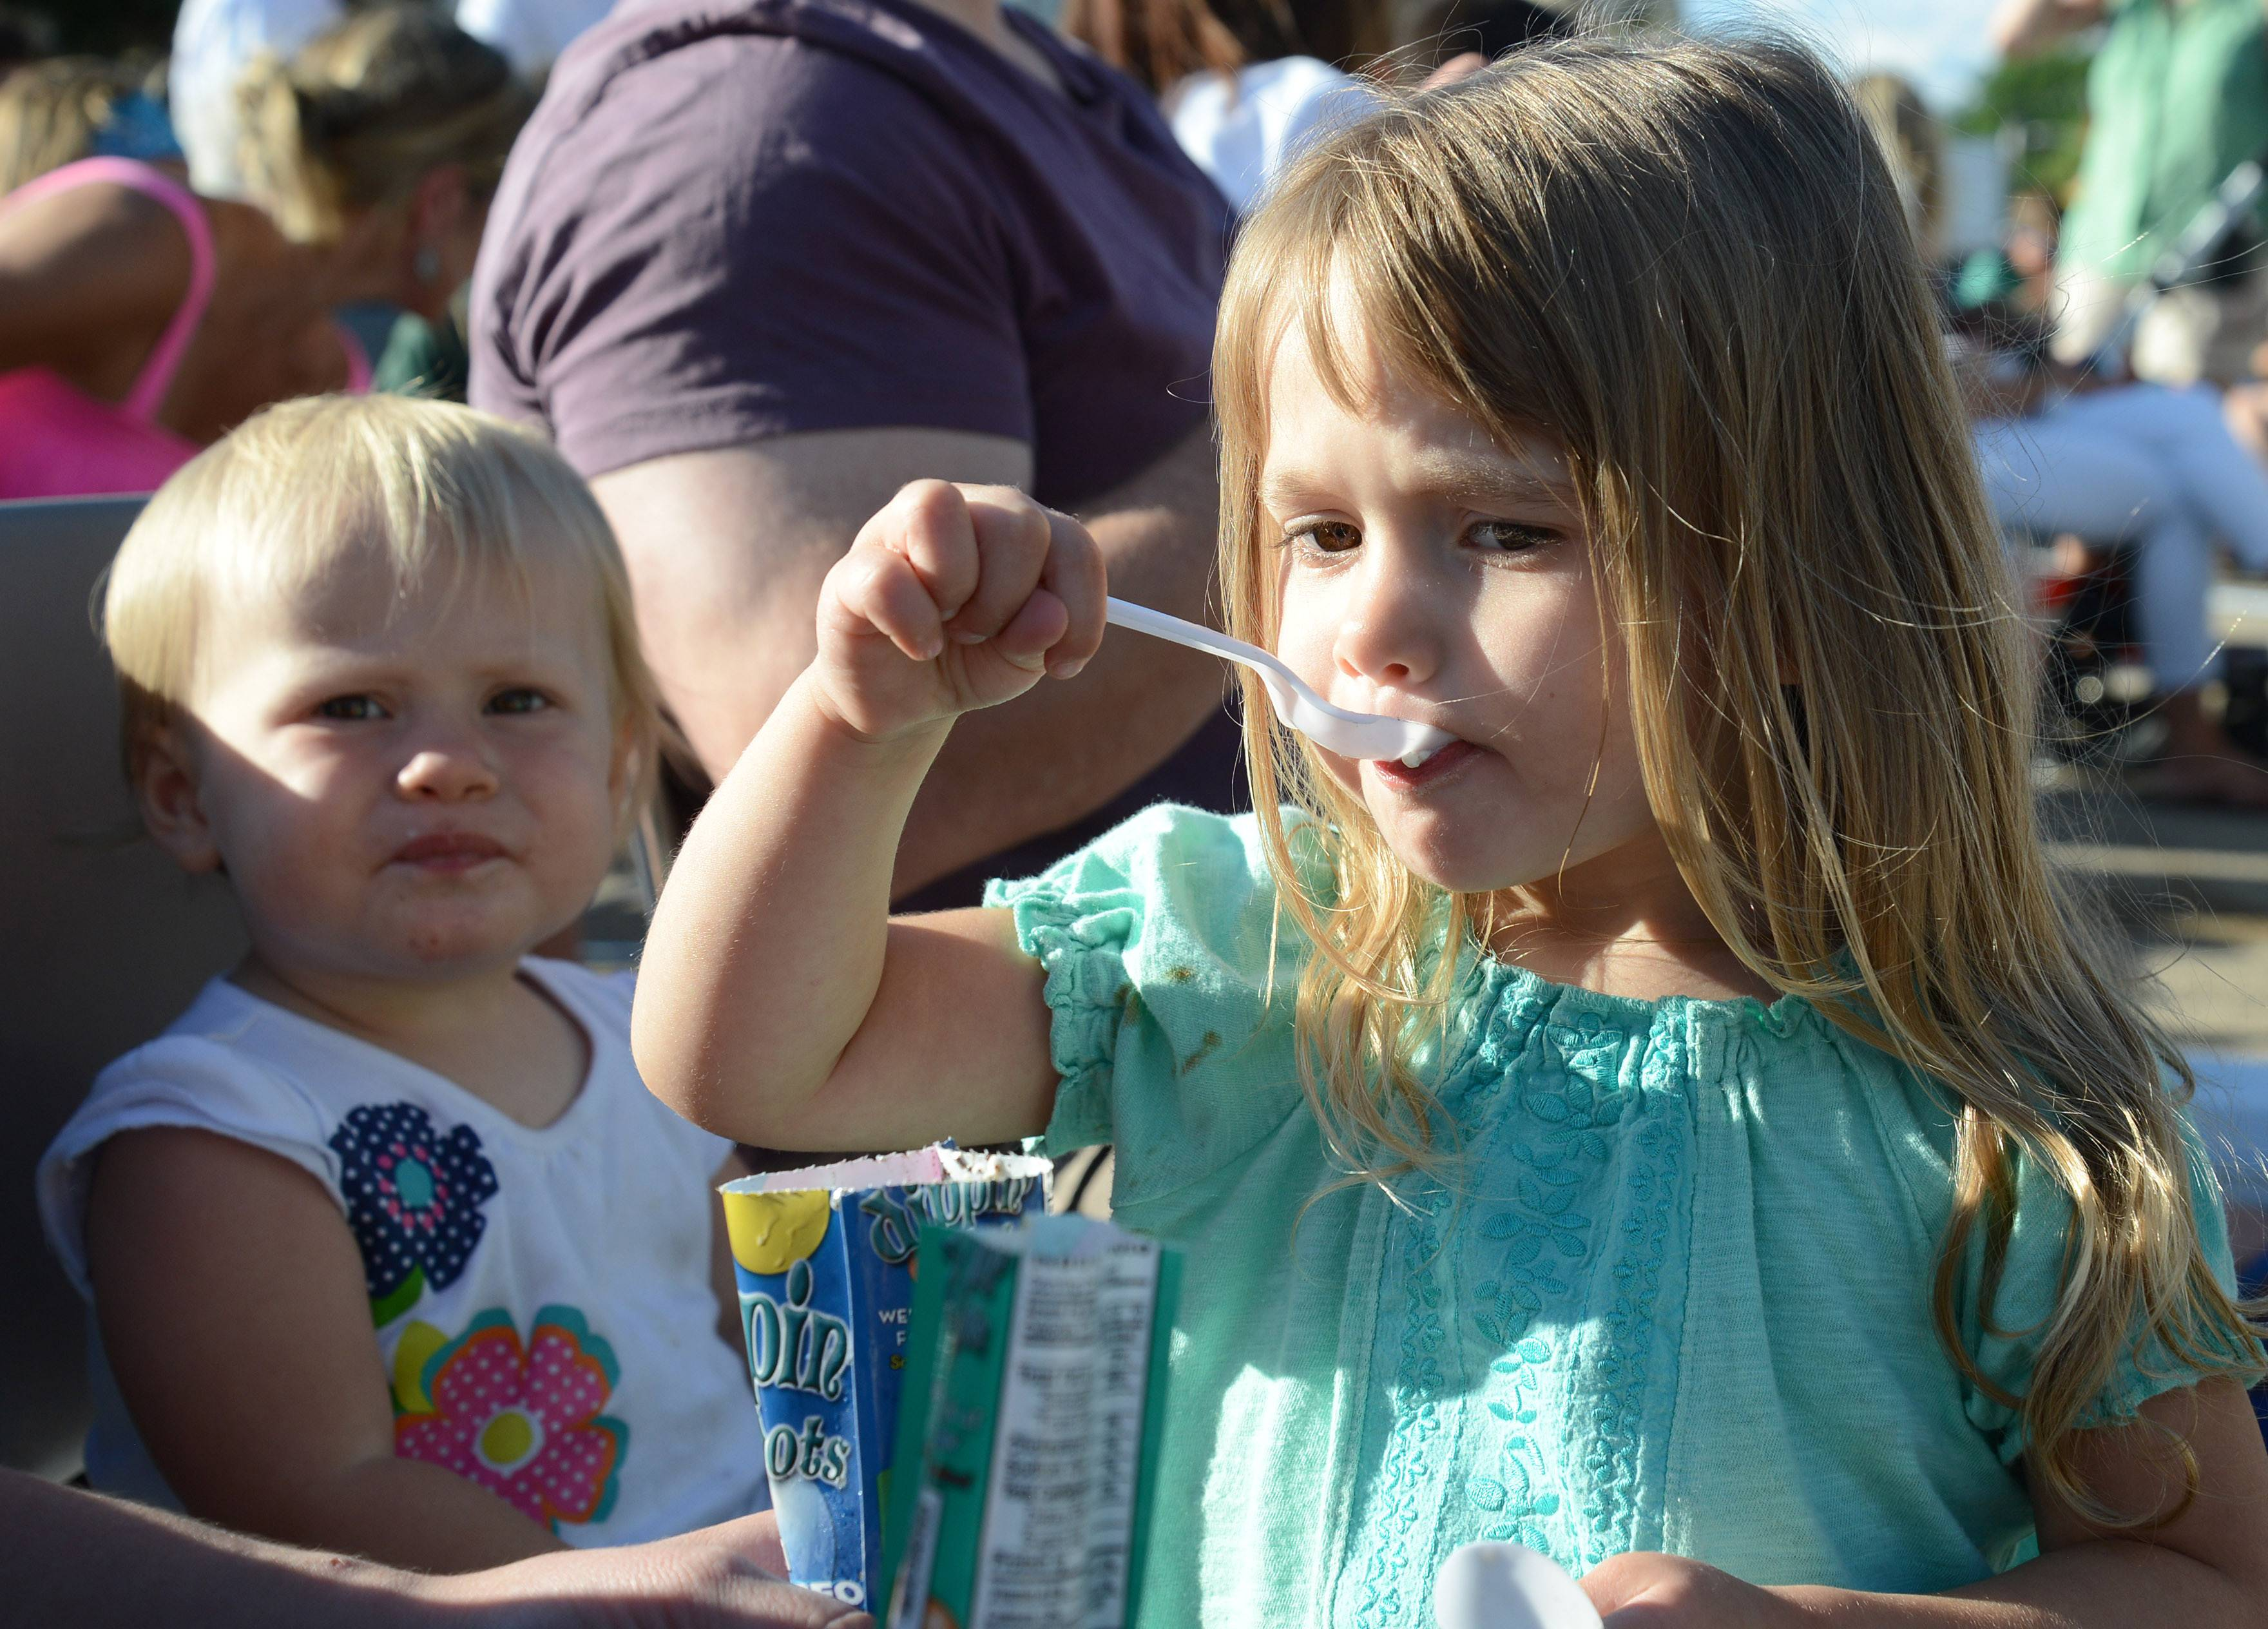 Cecilia Behrens, 3, of Geneva eats Dippin' Dots ice cream while taking turns feeding herself and little sister, Sophia, 1, at the Geneva Public Library's annual Ice Cream Social on Wednesday. This was their first time attending the event.